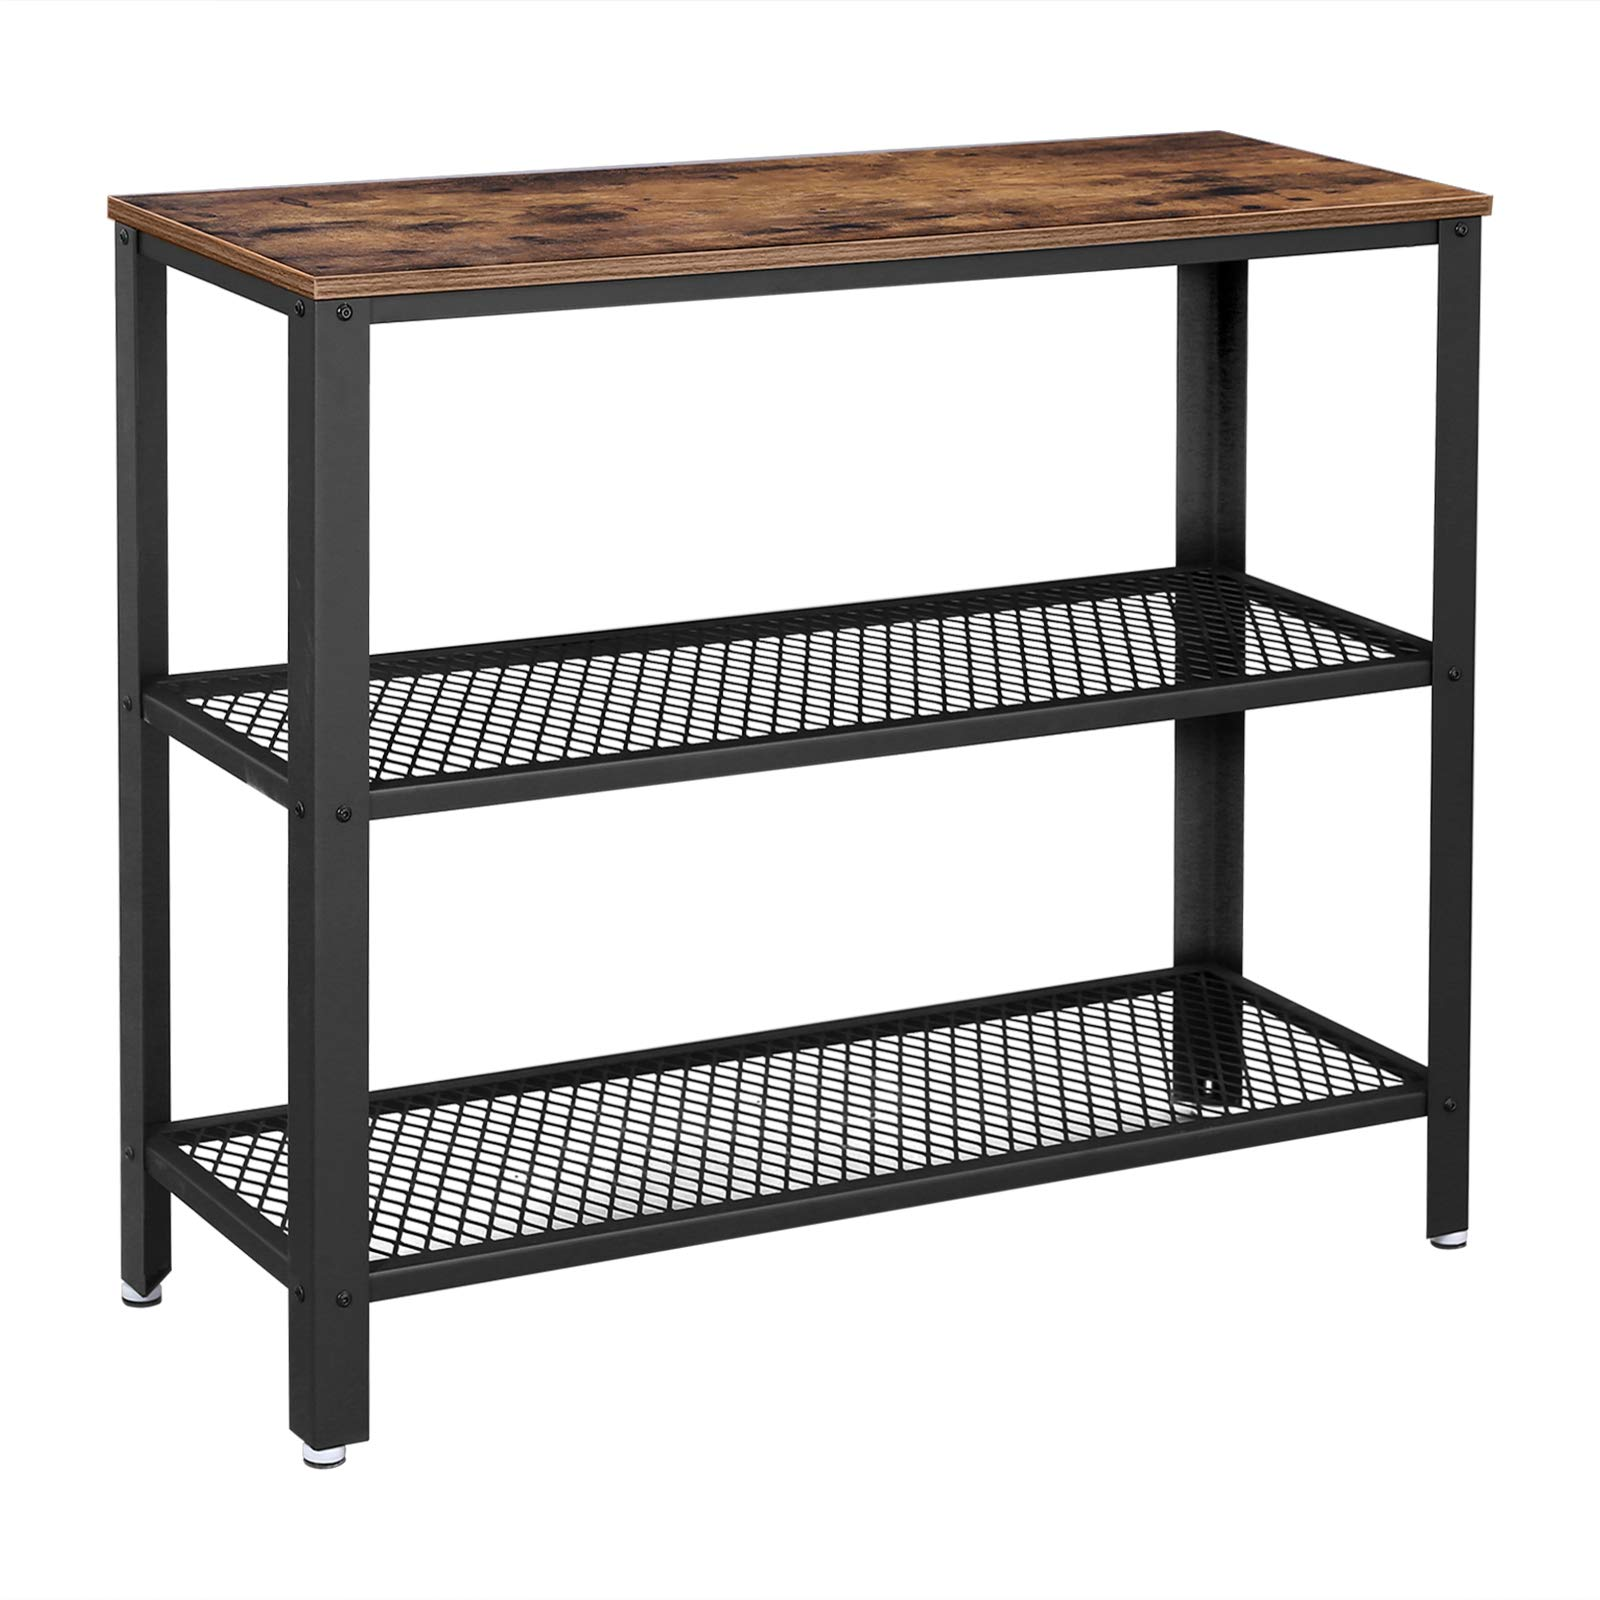 VASAGLE Industrial Console Table, Hallway Table with 2 Mesh Shelves, Side Table and Sideboard, Living Room, Corridor, Narrow, Iron, Rustic Brown ULNT81BX by VASAGLE